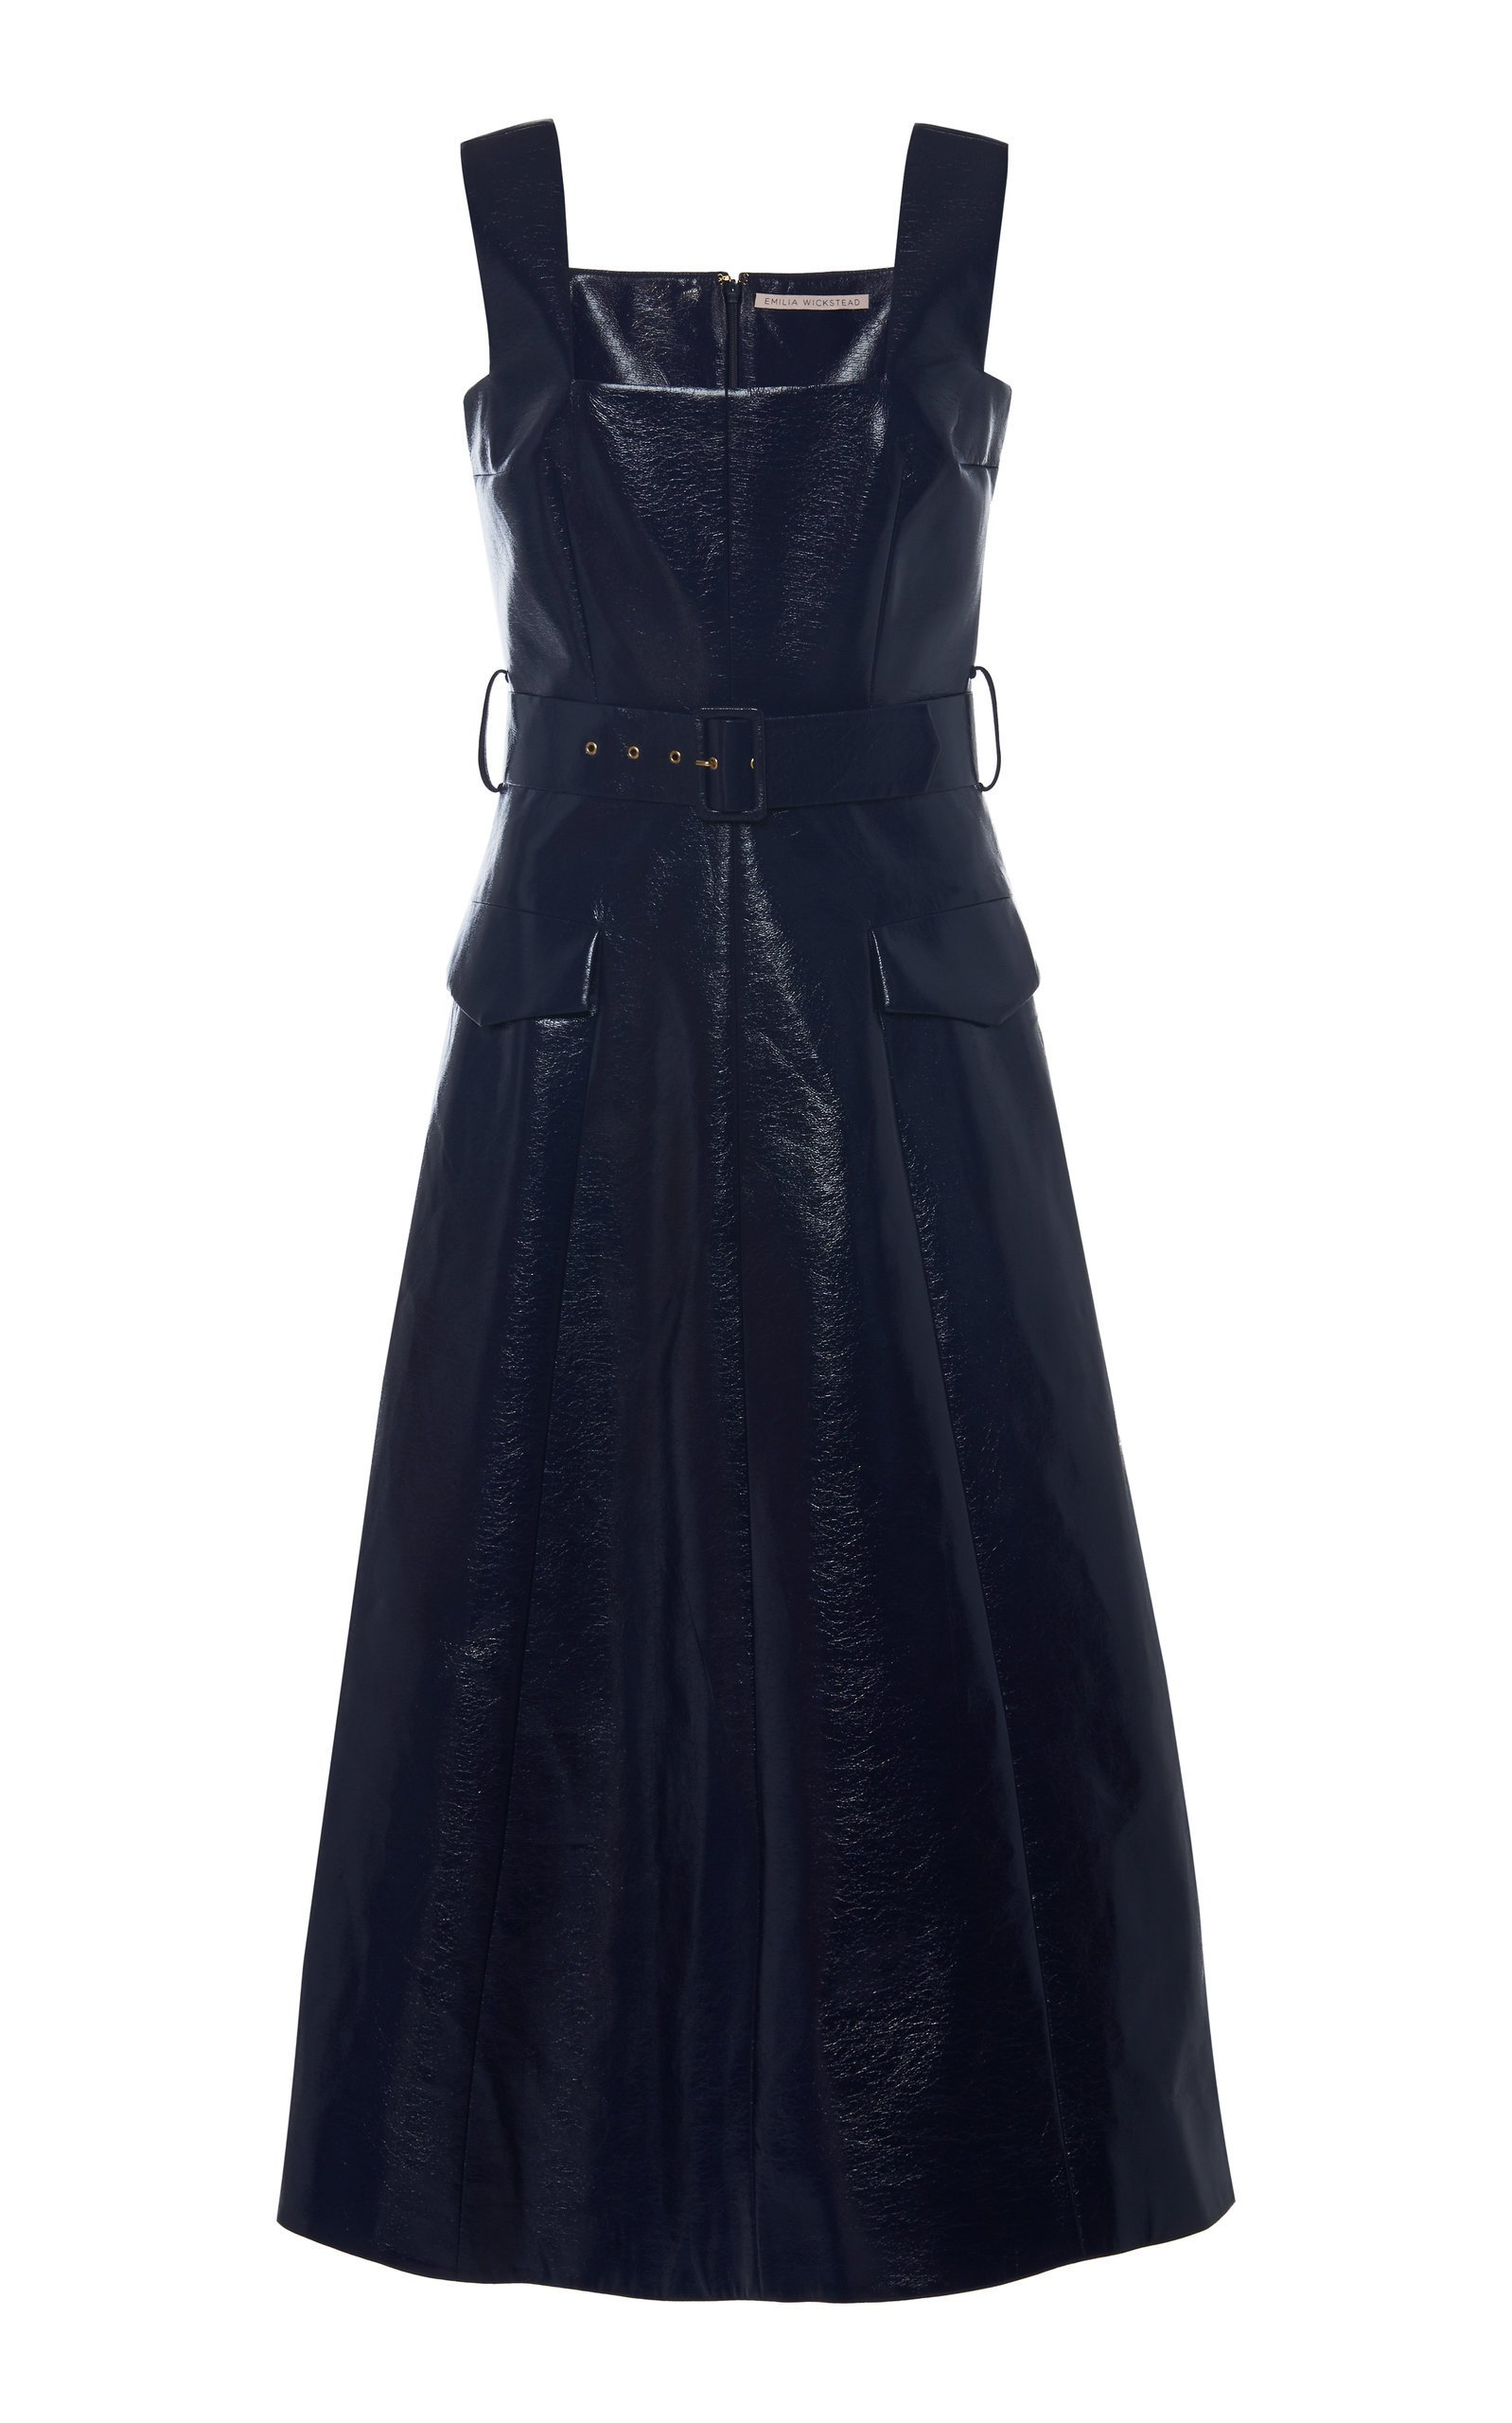 Emilia Wickstead Petra Belted Lurex Midi Dress